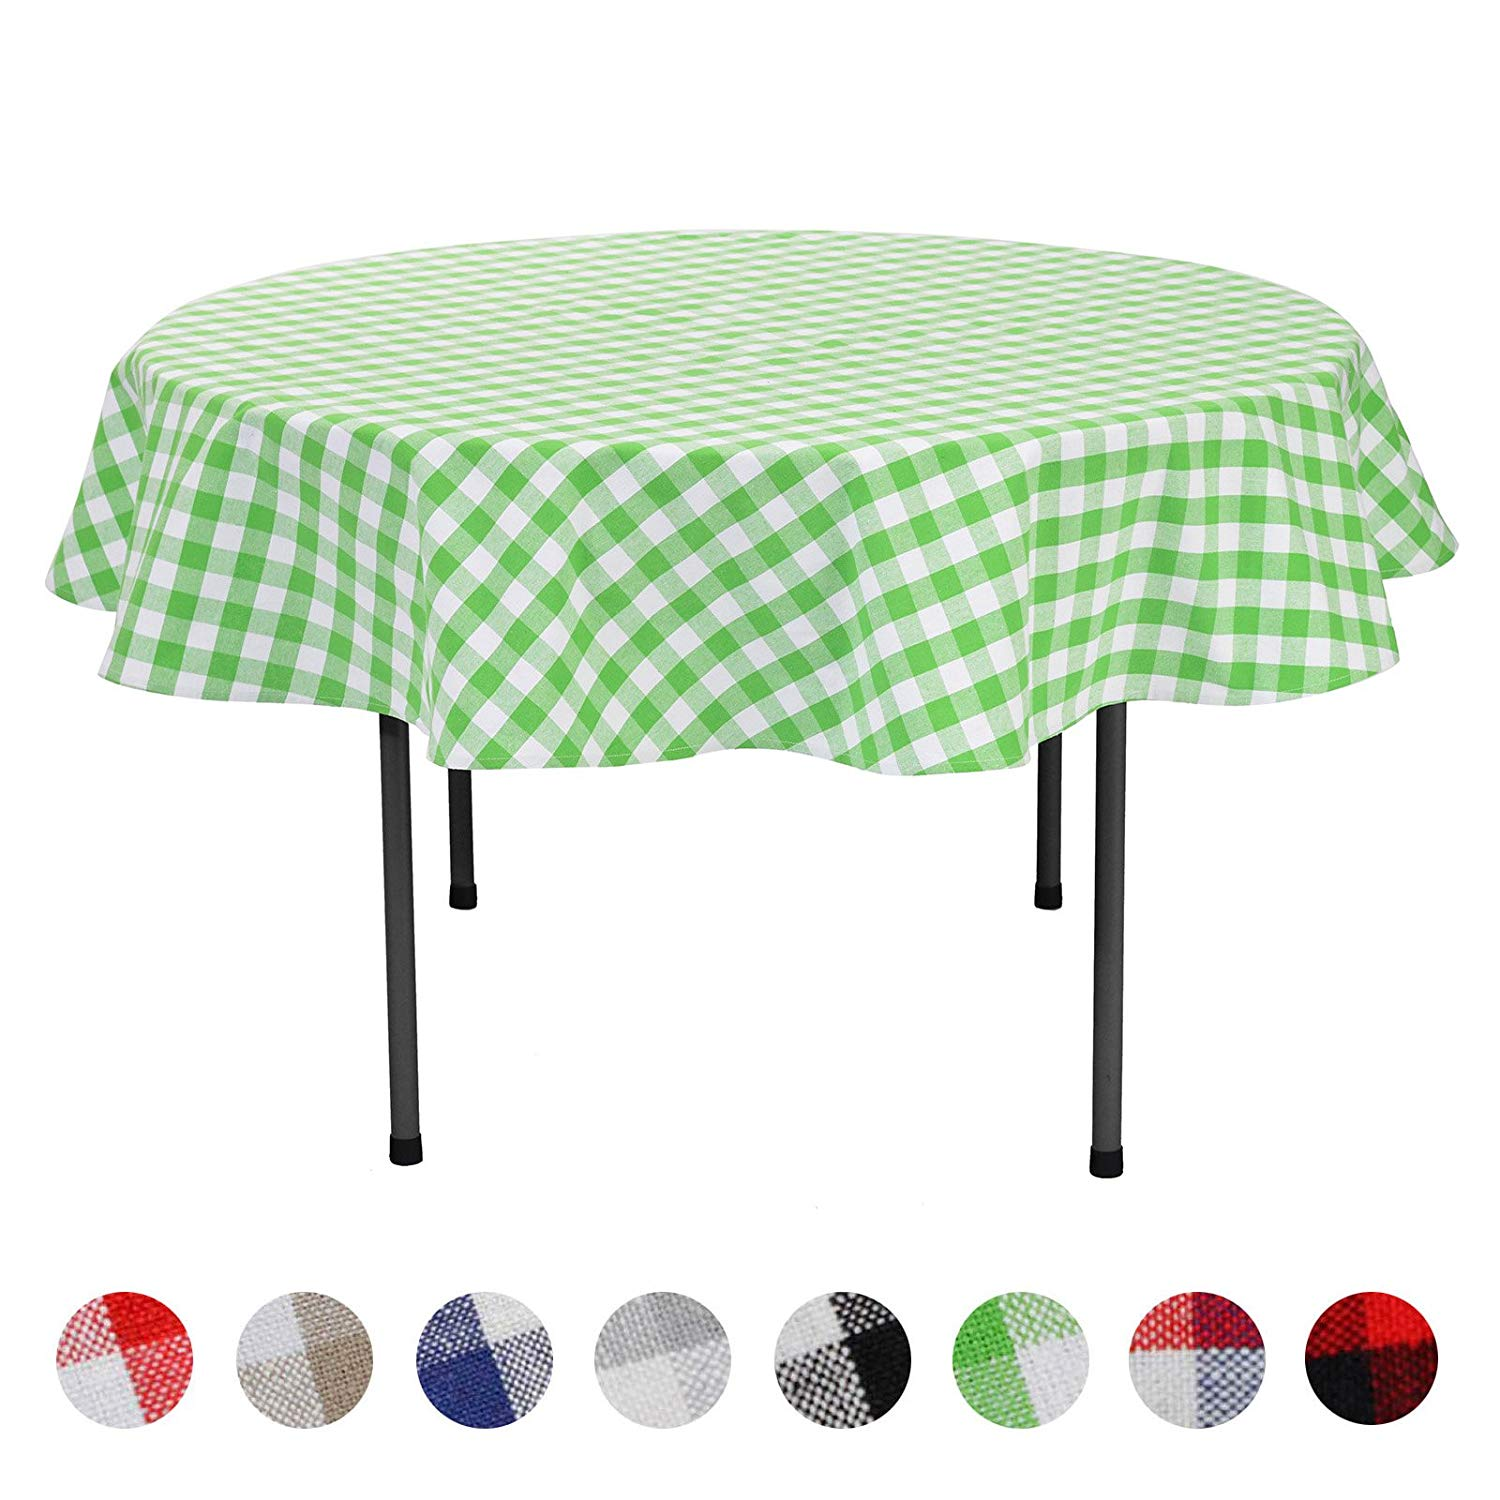 veeyoo plaid check tablecloth gingham cotton for round accent home kitchen party indoor outdoor use inch seats people purple furniture ikea living room very narrow end table